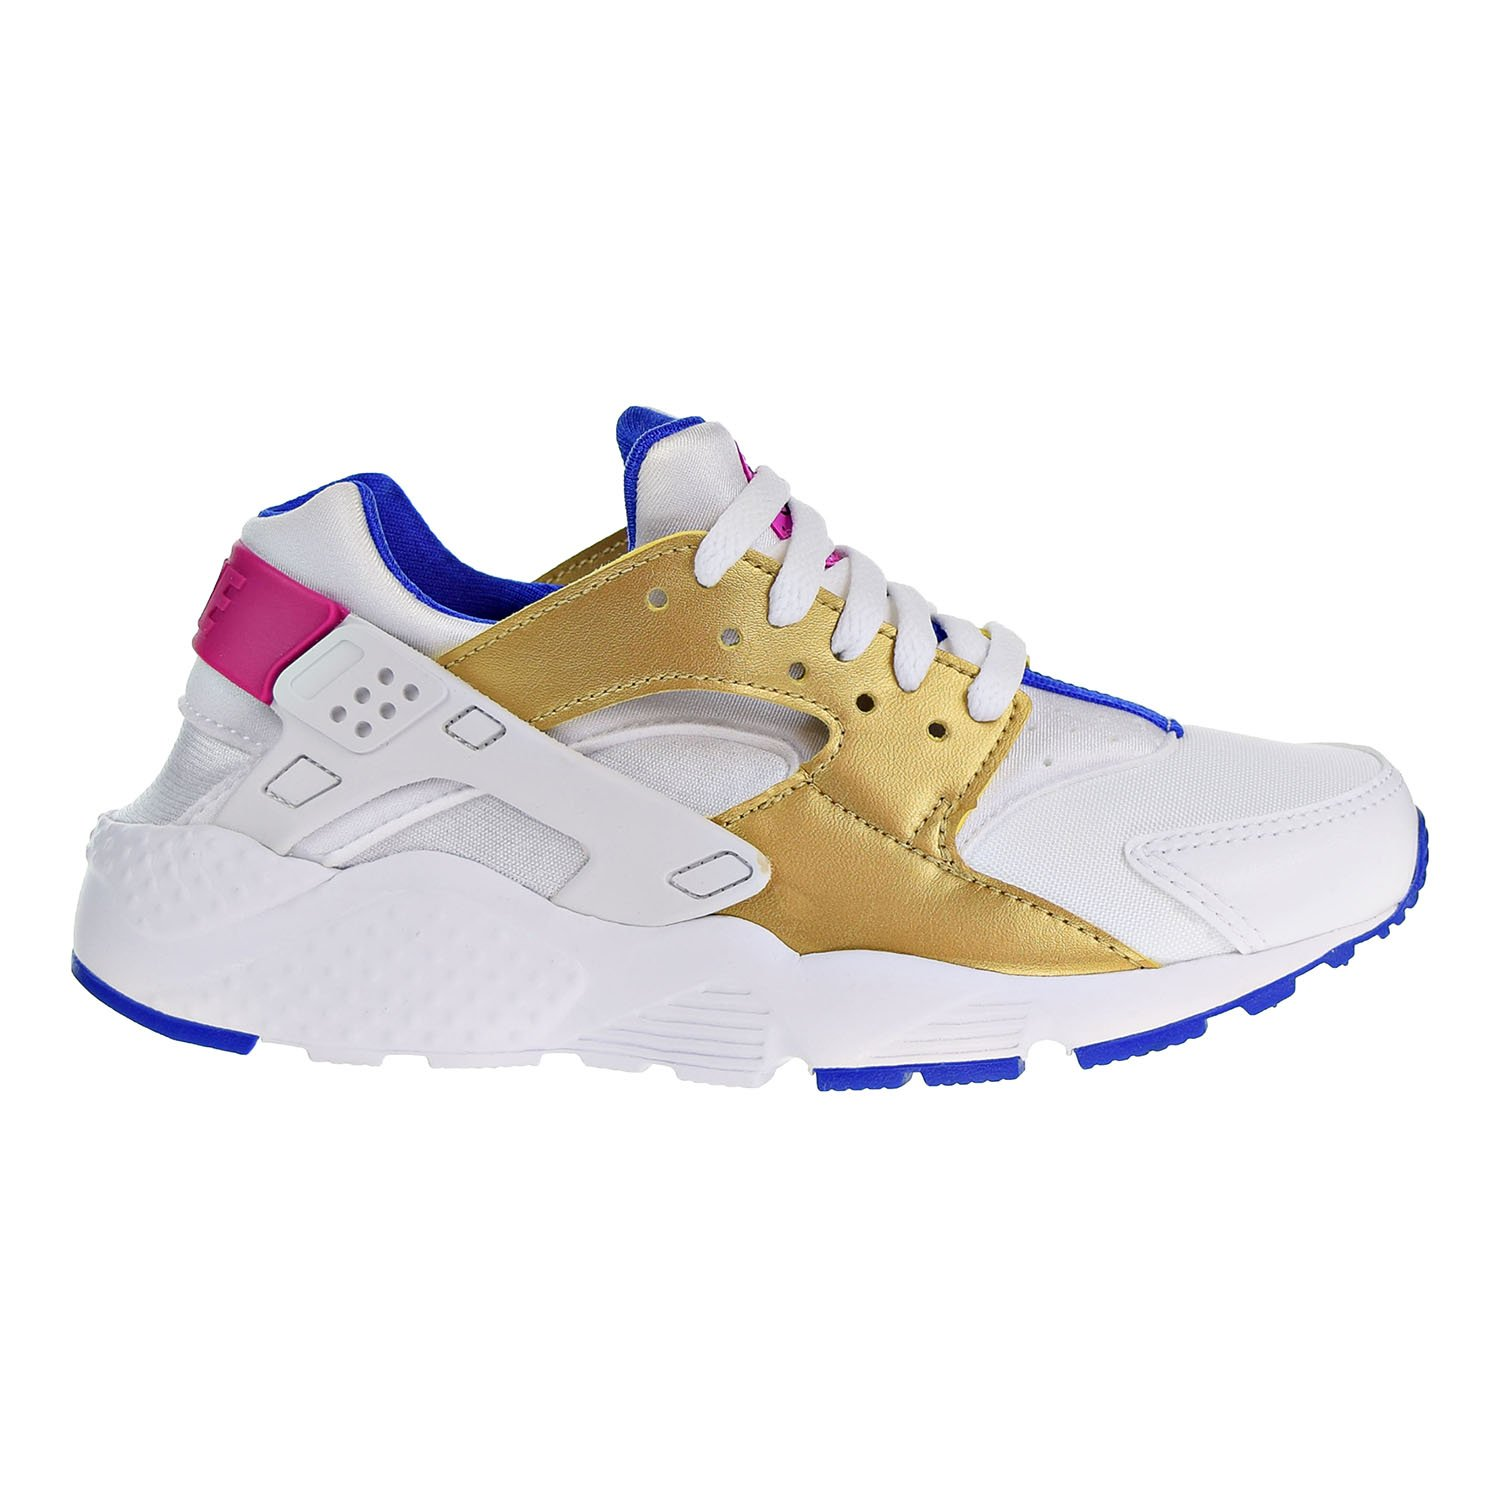 check out 4ac25 ac742 Galleon - NIKE Huarache Run (GS) Big Kids Shoes White Metallic Gold Racer  Blue 654280-109 (5 M US)